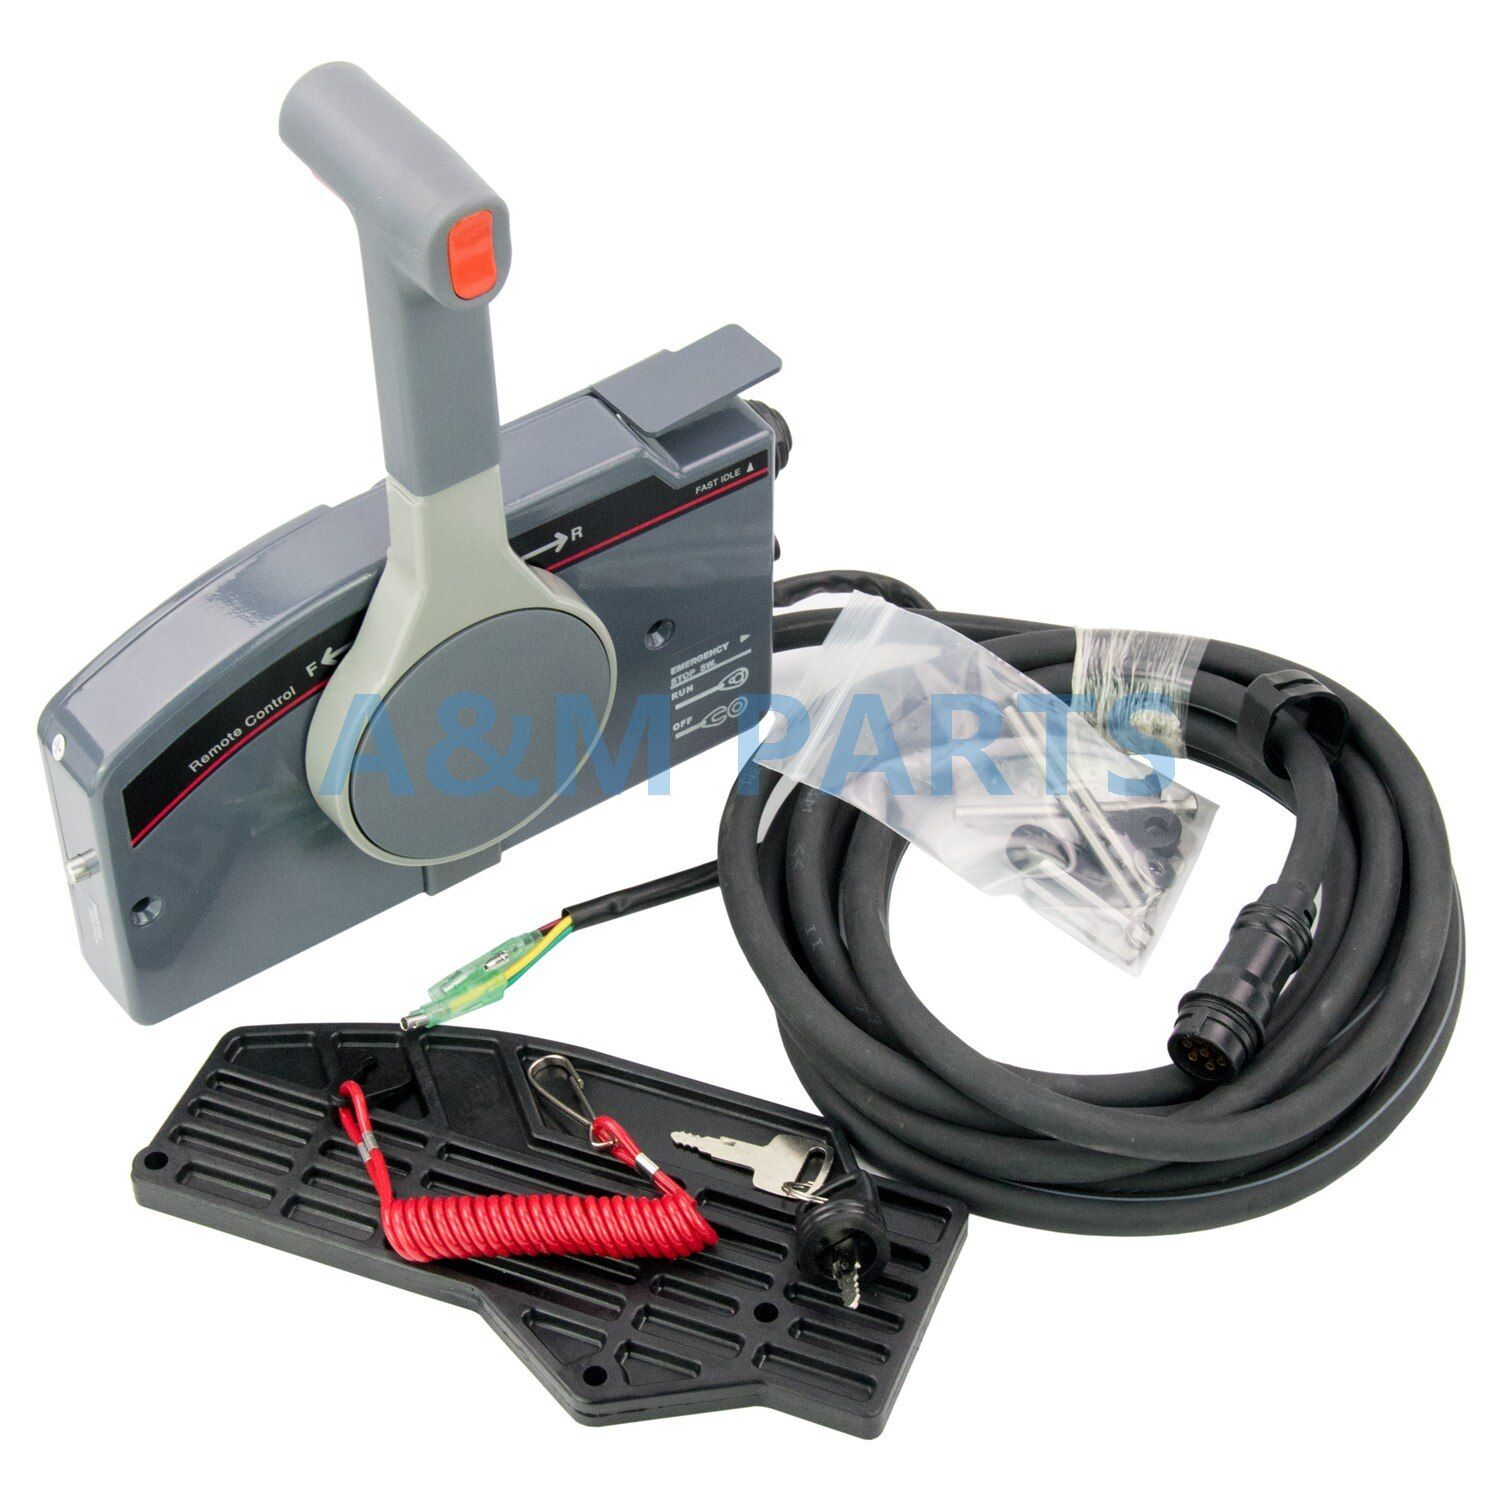 PUSH Throttle Remote Control Box 703 for Yamaha Outboard Side Mount 7 Pin Cable Without Tilt & Trim Switch